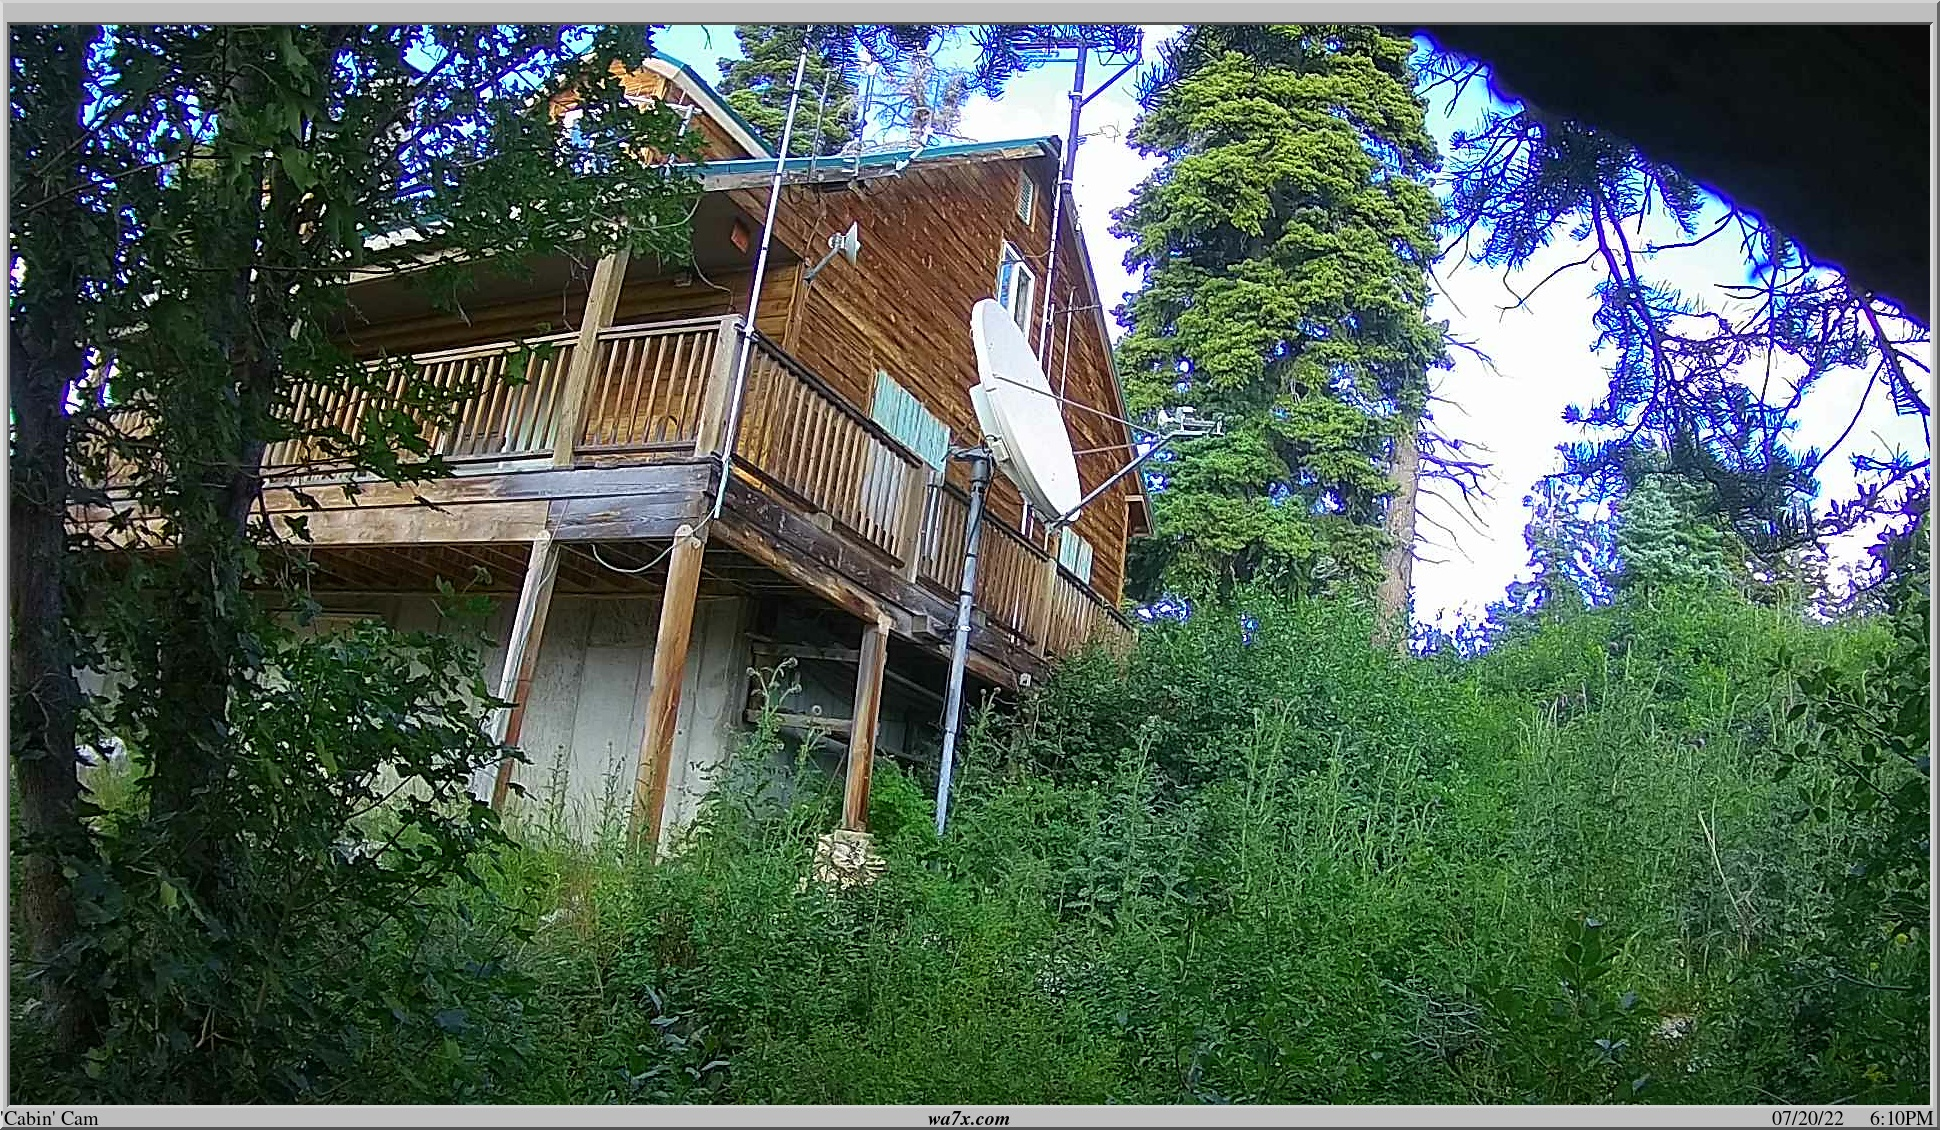 The Cabin Cam""